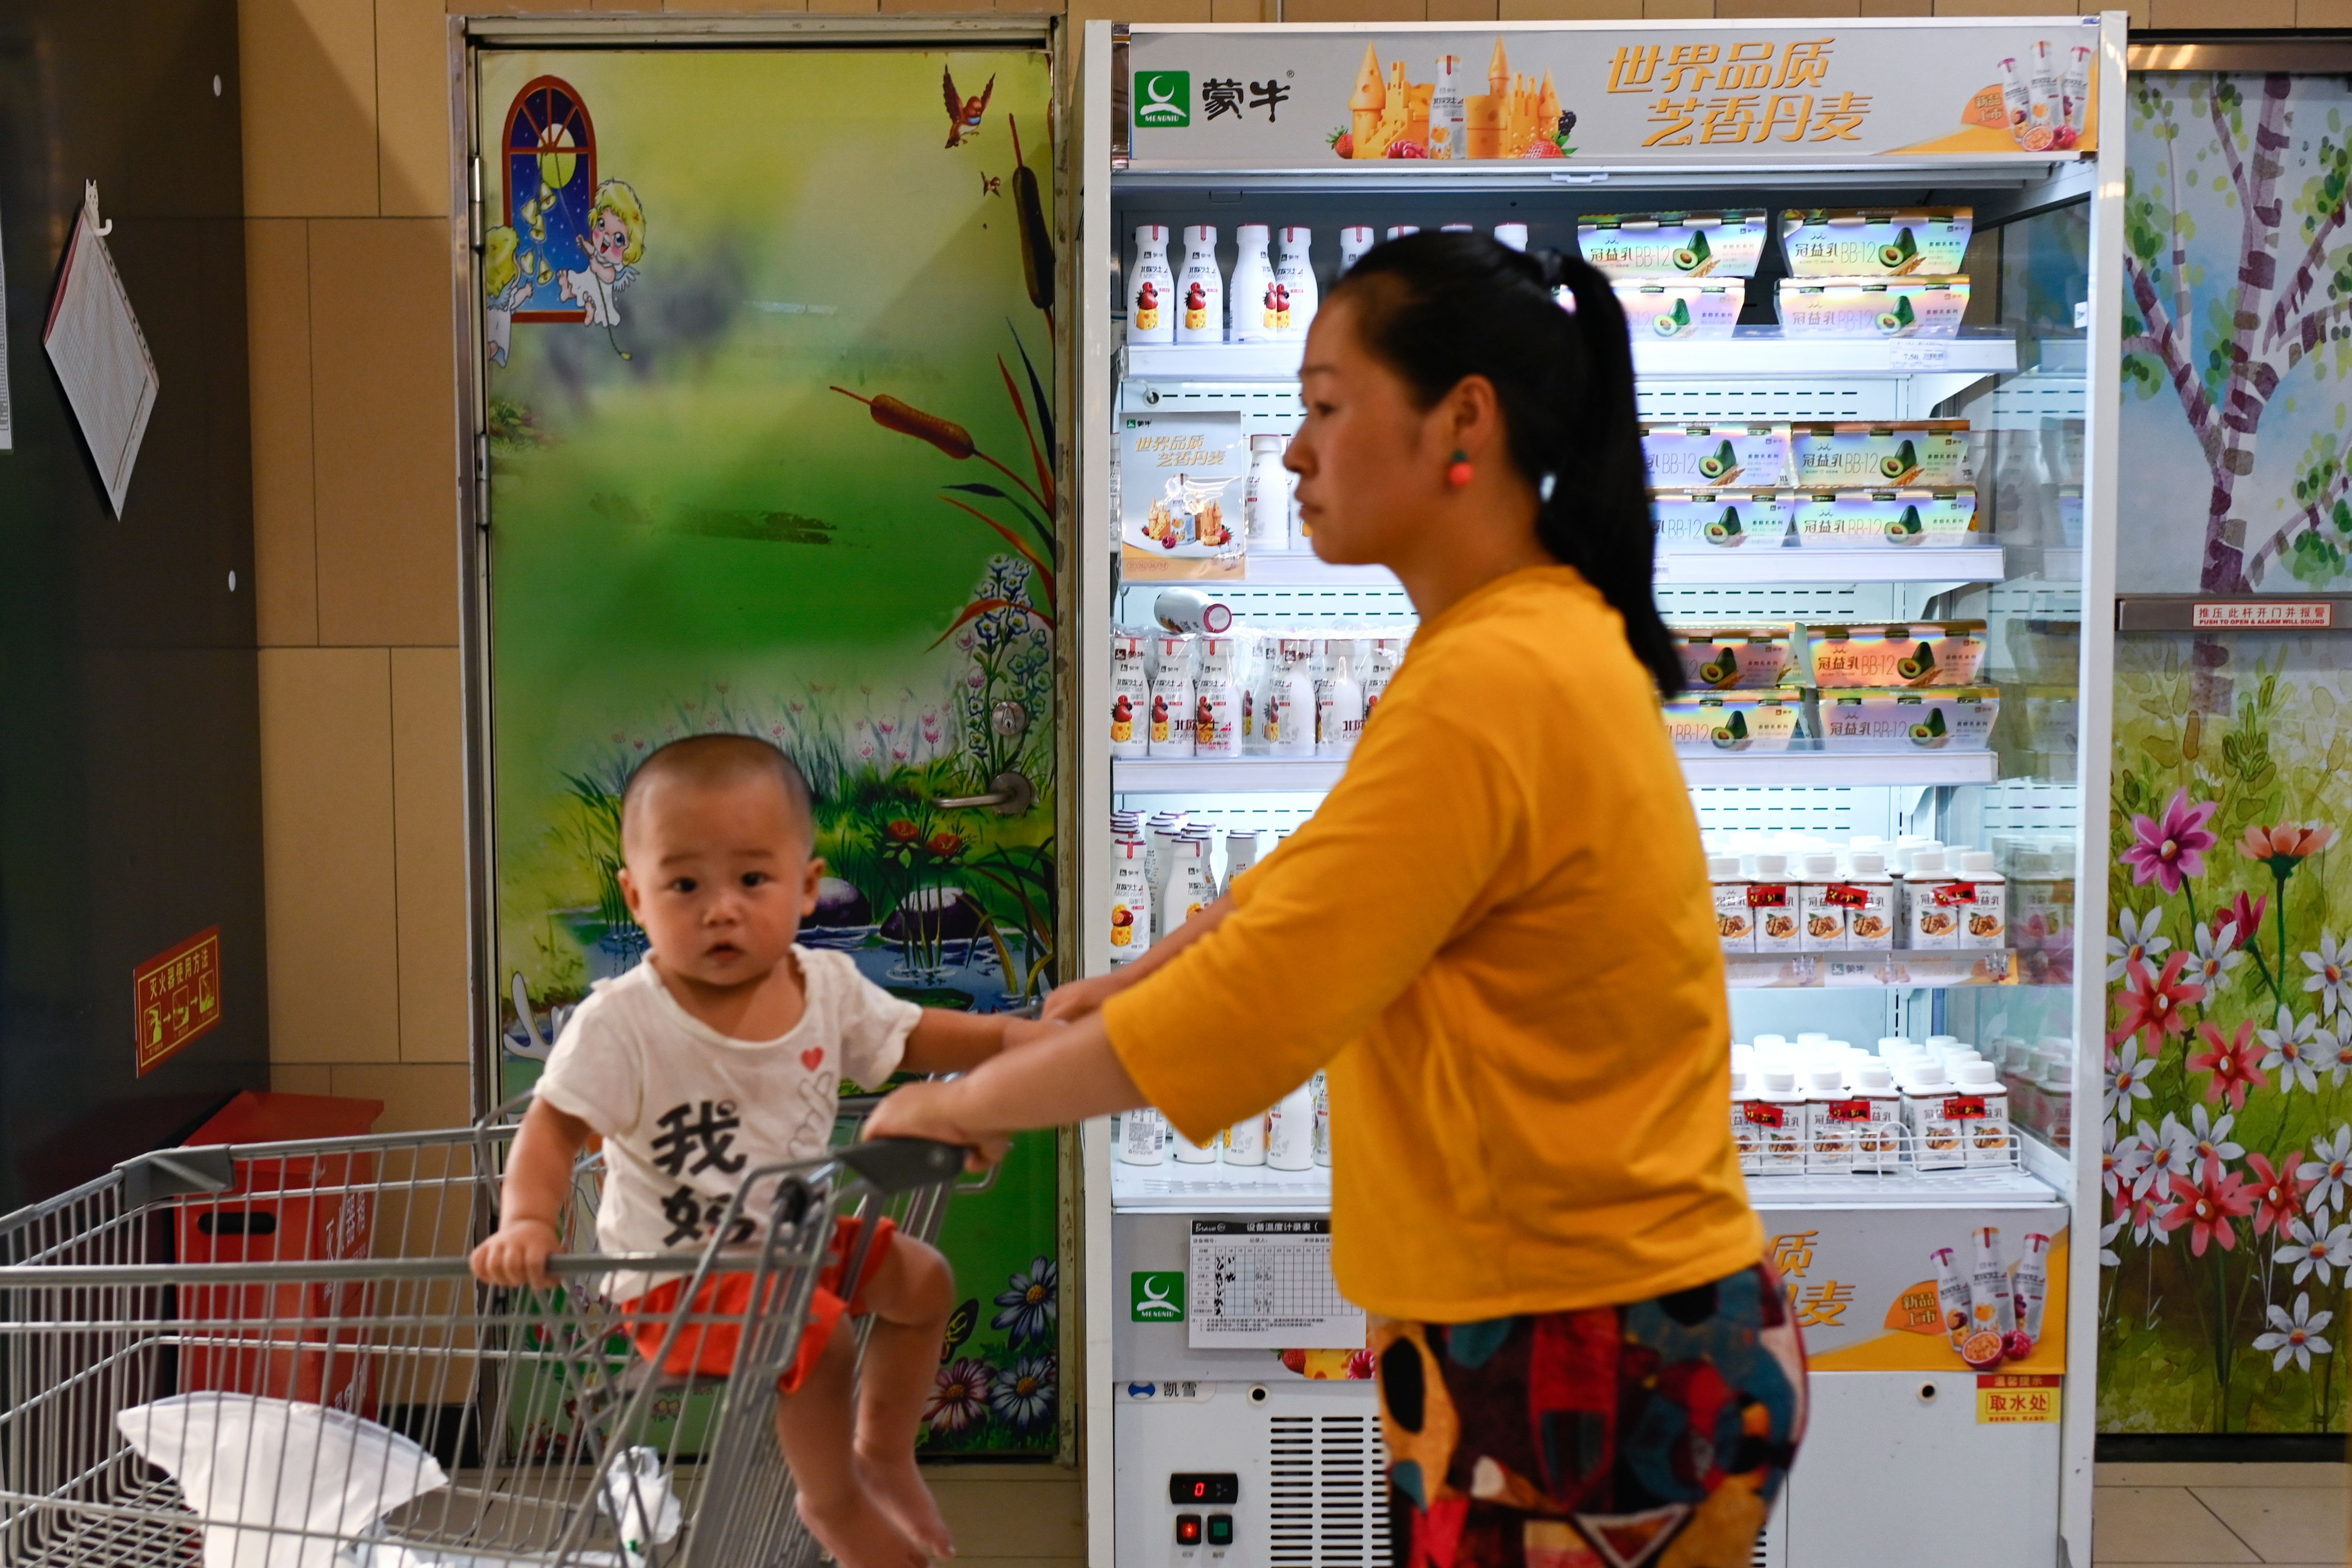 A customer and child are seen past a refrigerator displaying Mengniu milk products at a store in Beijing on June 24, 2019. - Coca-Cola and Chinese dairy firm Mengniu have signed a deal to become joint sponsors of the Olympic Games from 2021 to 2032, IOC chief Thomas Bach announced on June 24. (Photo by WANG Zhao / AFP) (Photo credit should read WANG ZHAO/AFP/Getty Images)